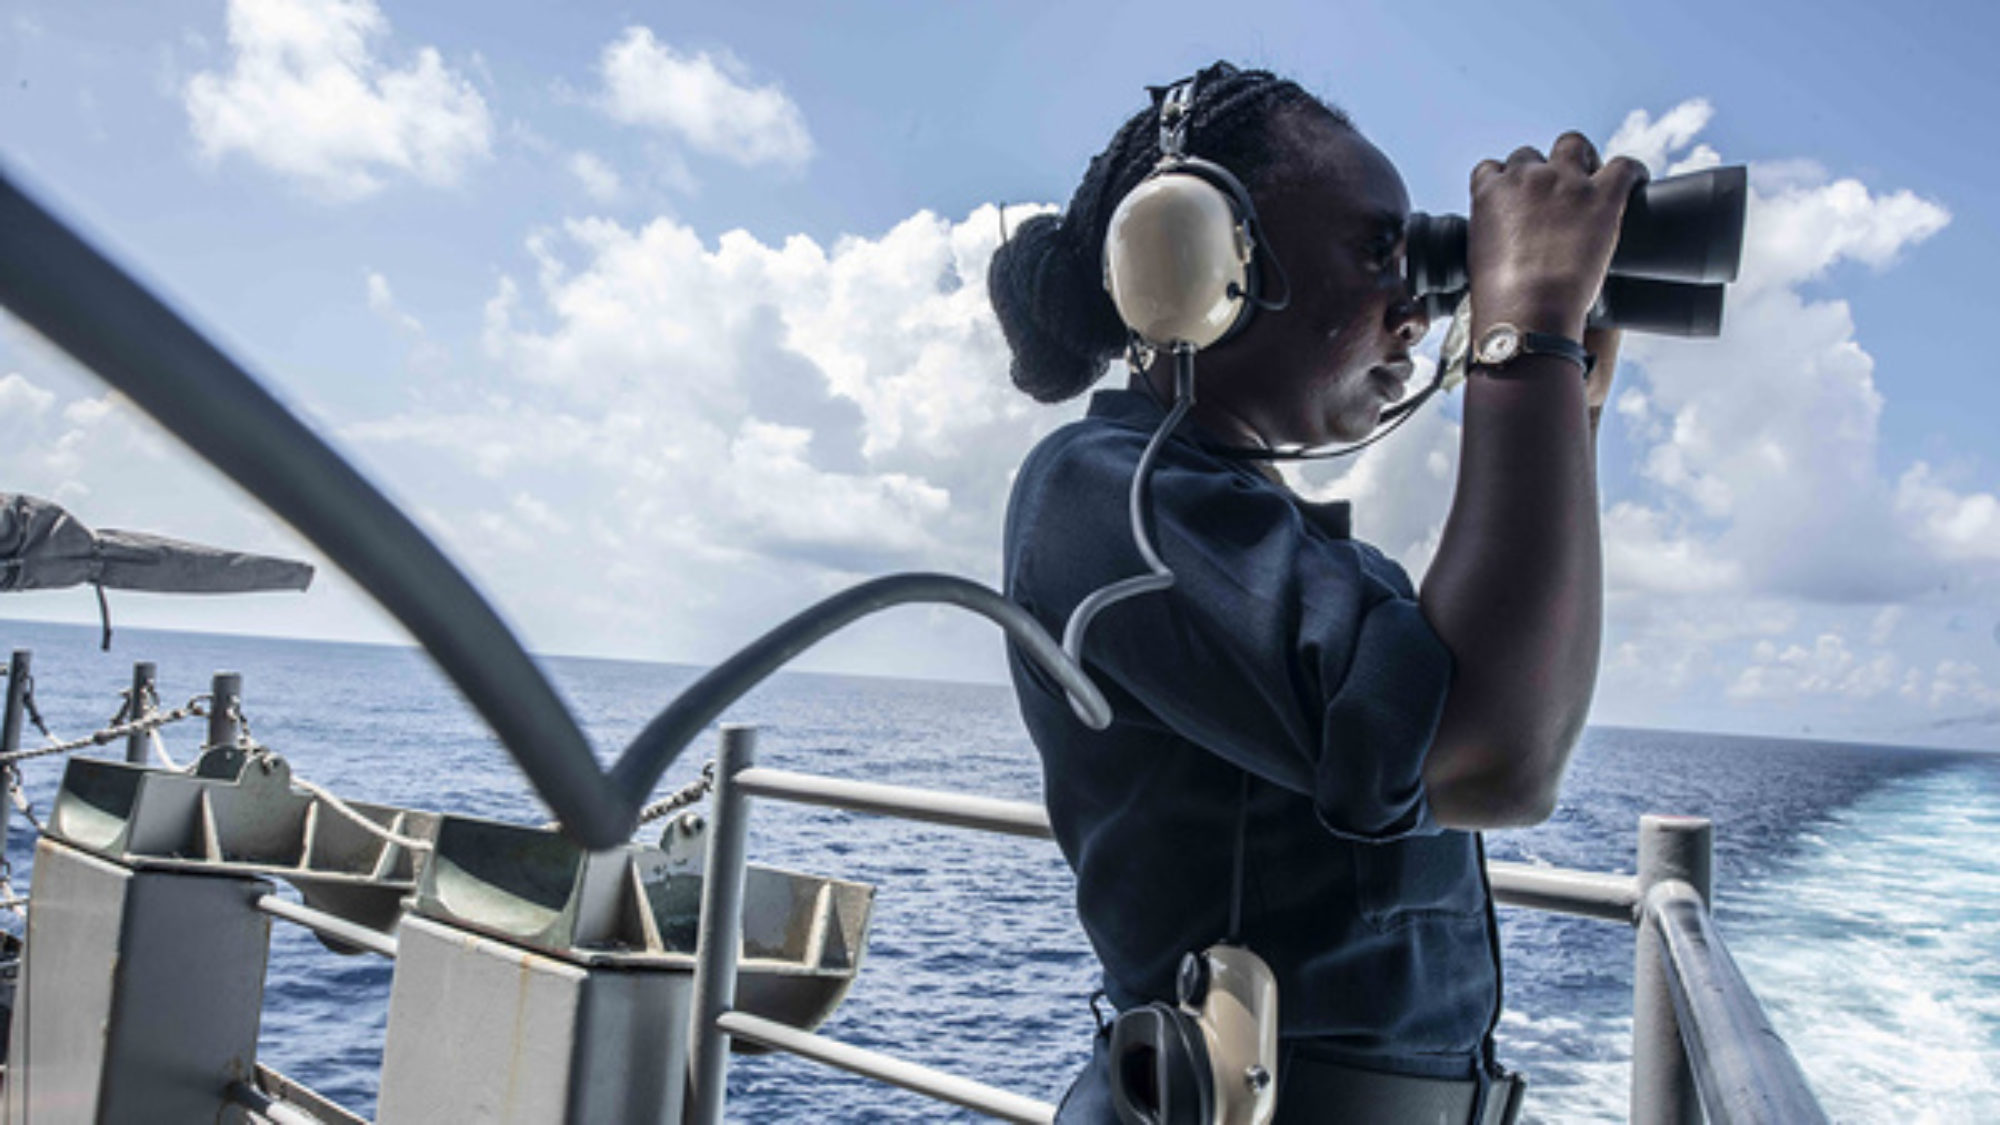 A seaman uses binoculars while standing aboard the U.S. Navy aircraft carrier USS Ronald Reagan.